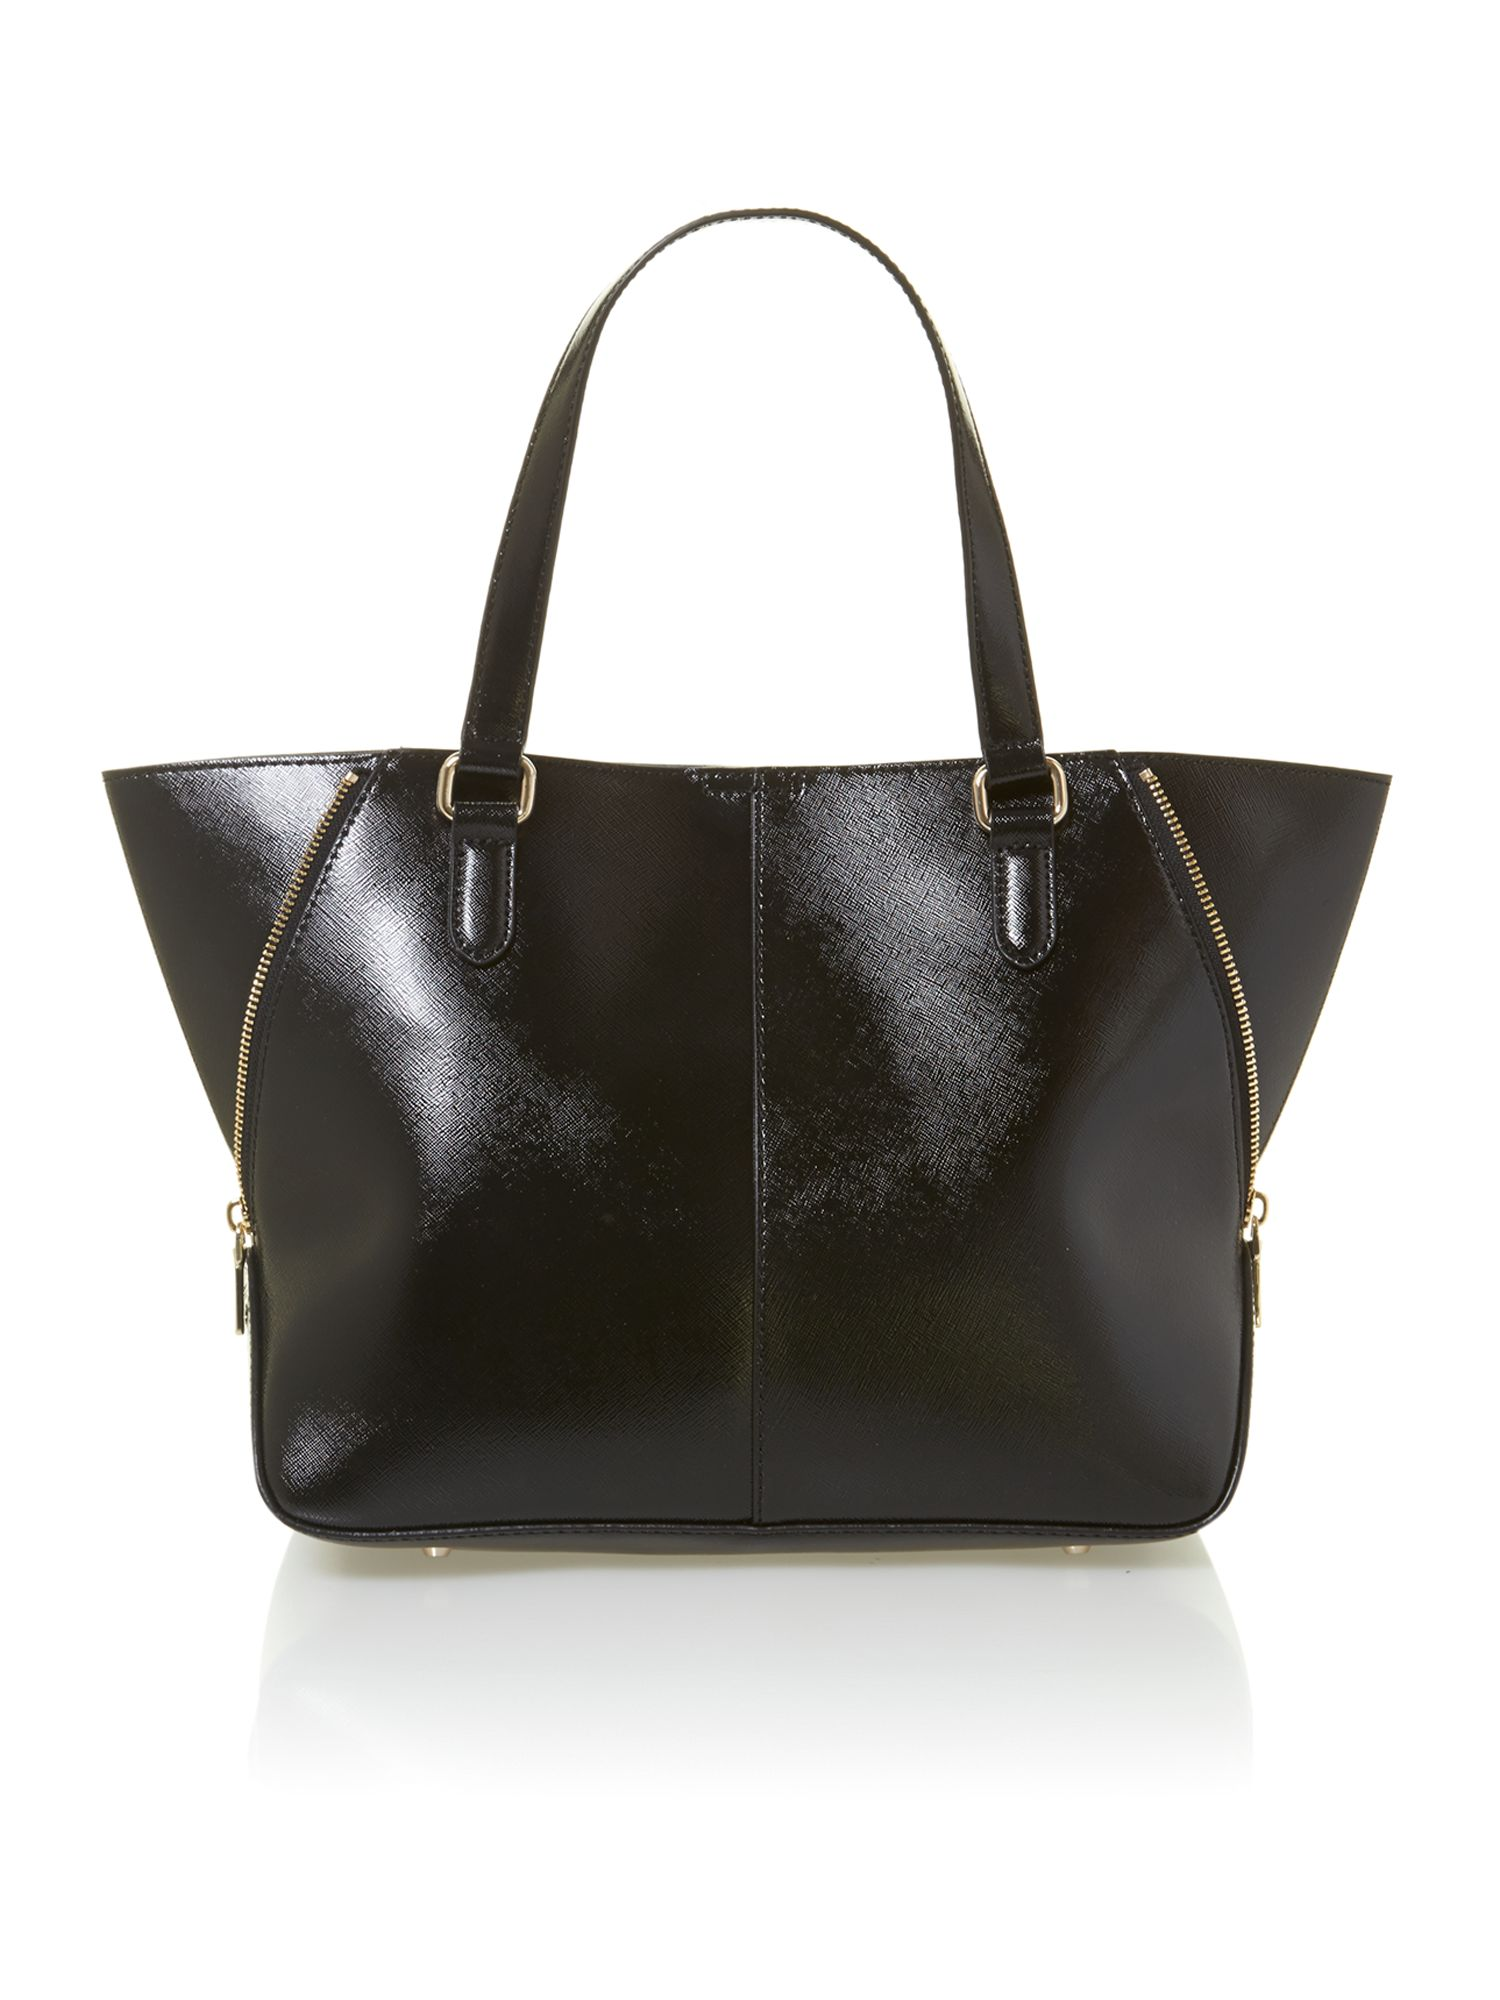 Shiny saffiano black stud tote bag